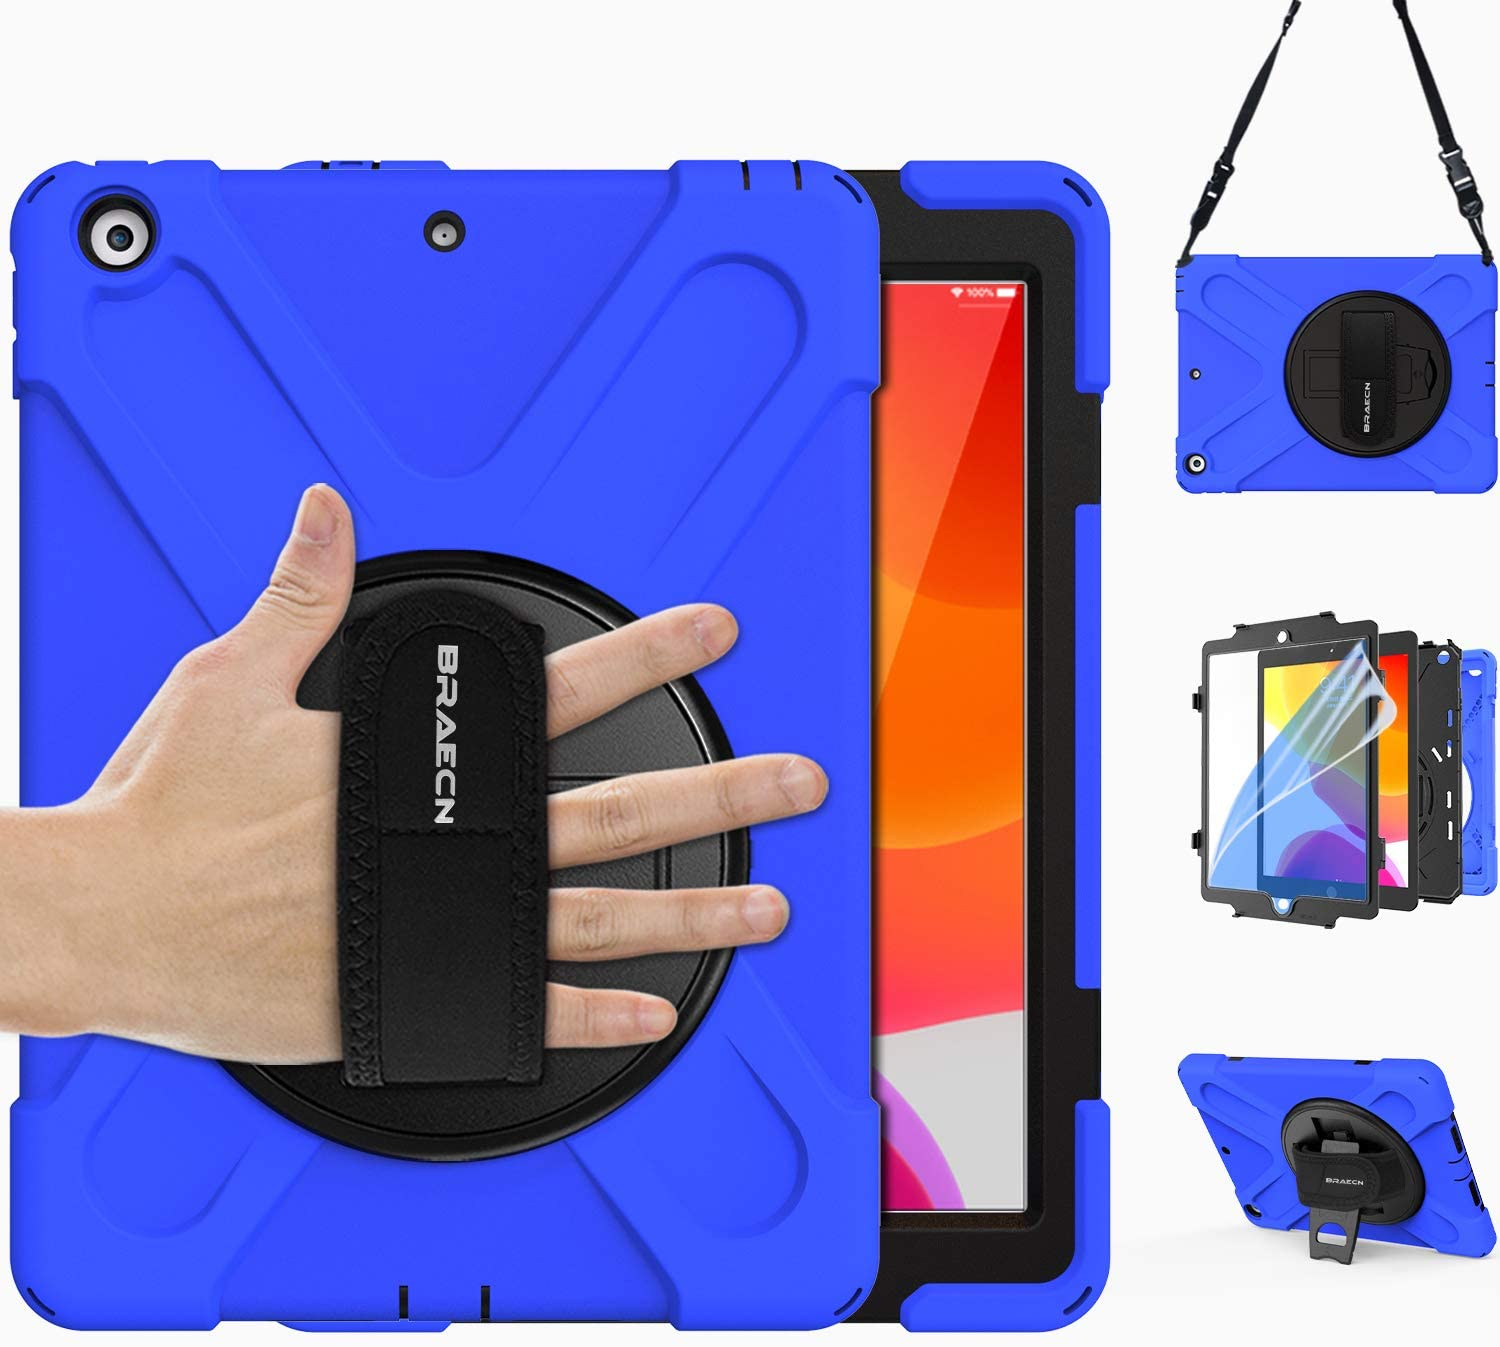 "BRAECN New iPad 8th/7th Generation 10.2"" Case 2020/2019 with [Kickstand] [Screen Protector] [Handle Grip Strap] [Shoulder Strap], Rugged Heavy Duty Cover for Apple iPad 8th/7th Gen 10.2 Inch -Blue"